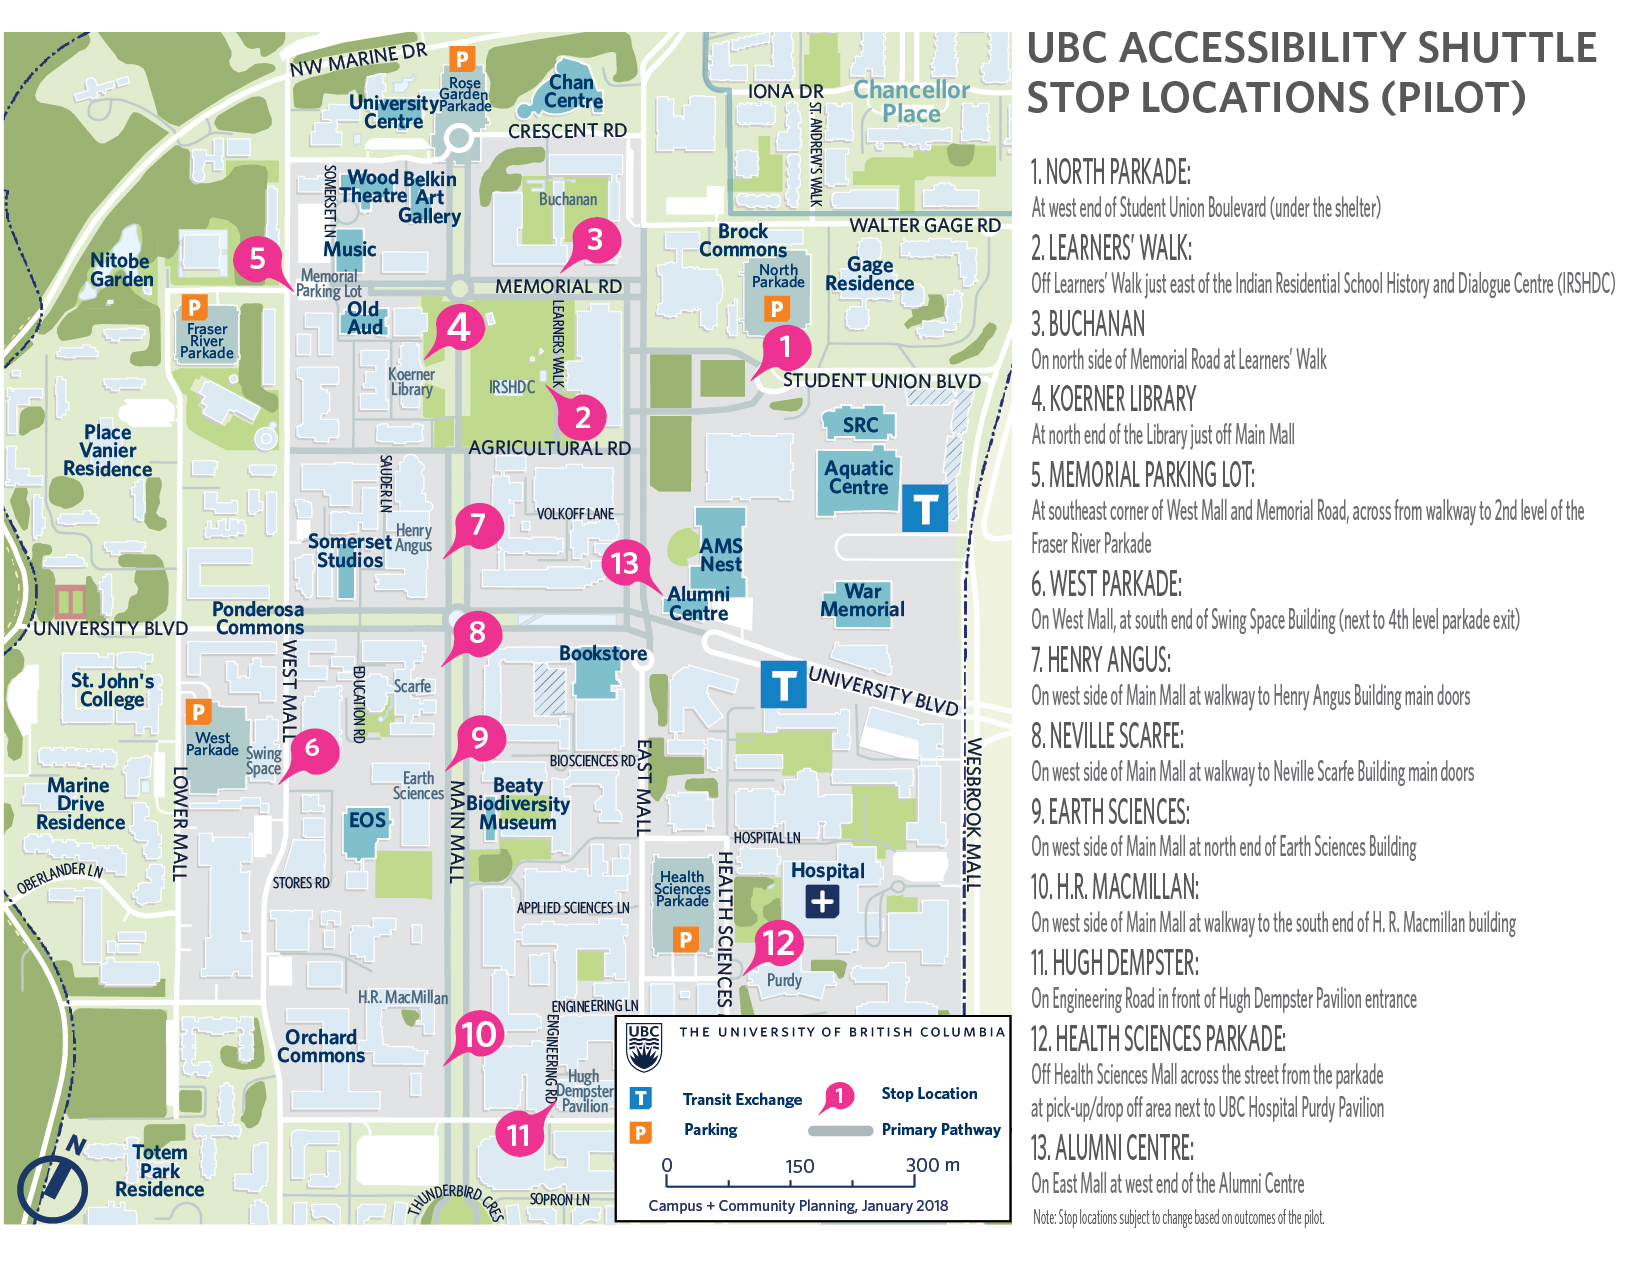 UBC Accessibility Shuttle stop locations